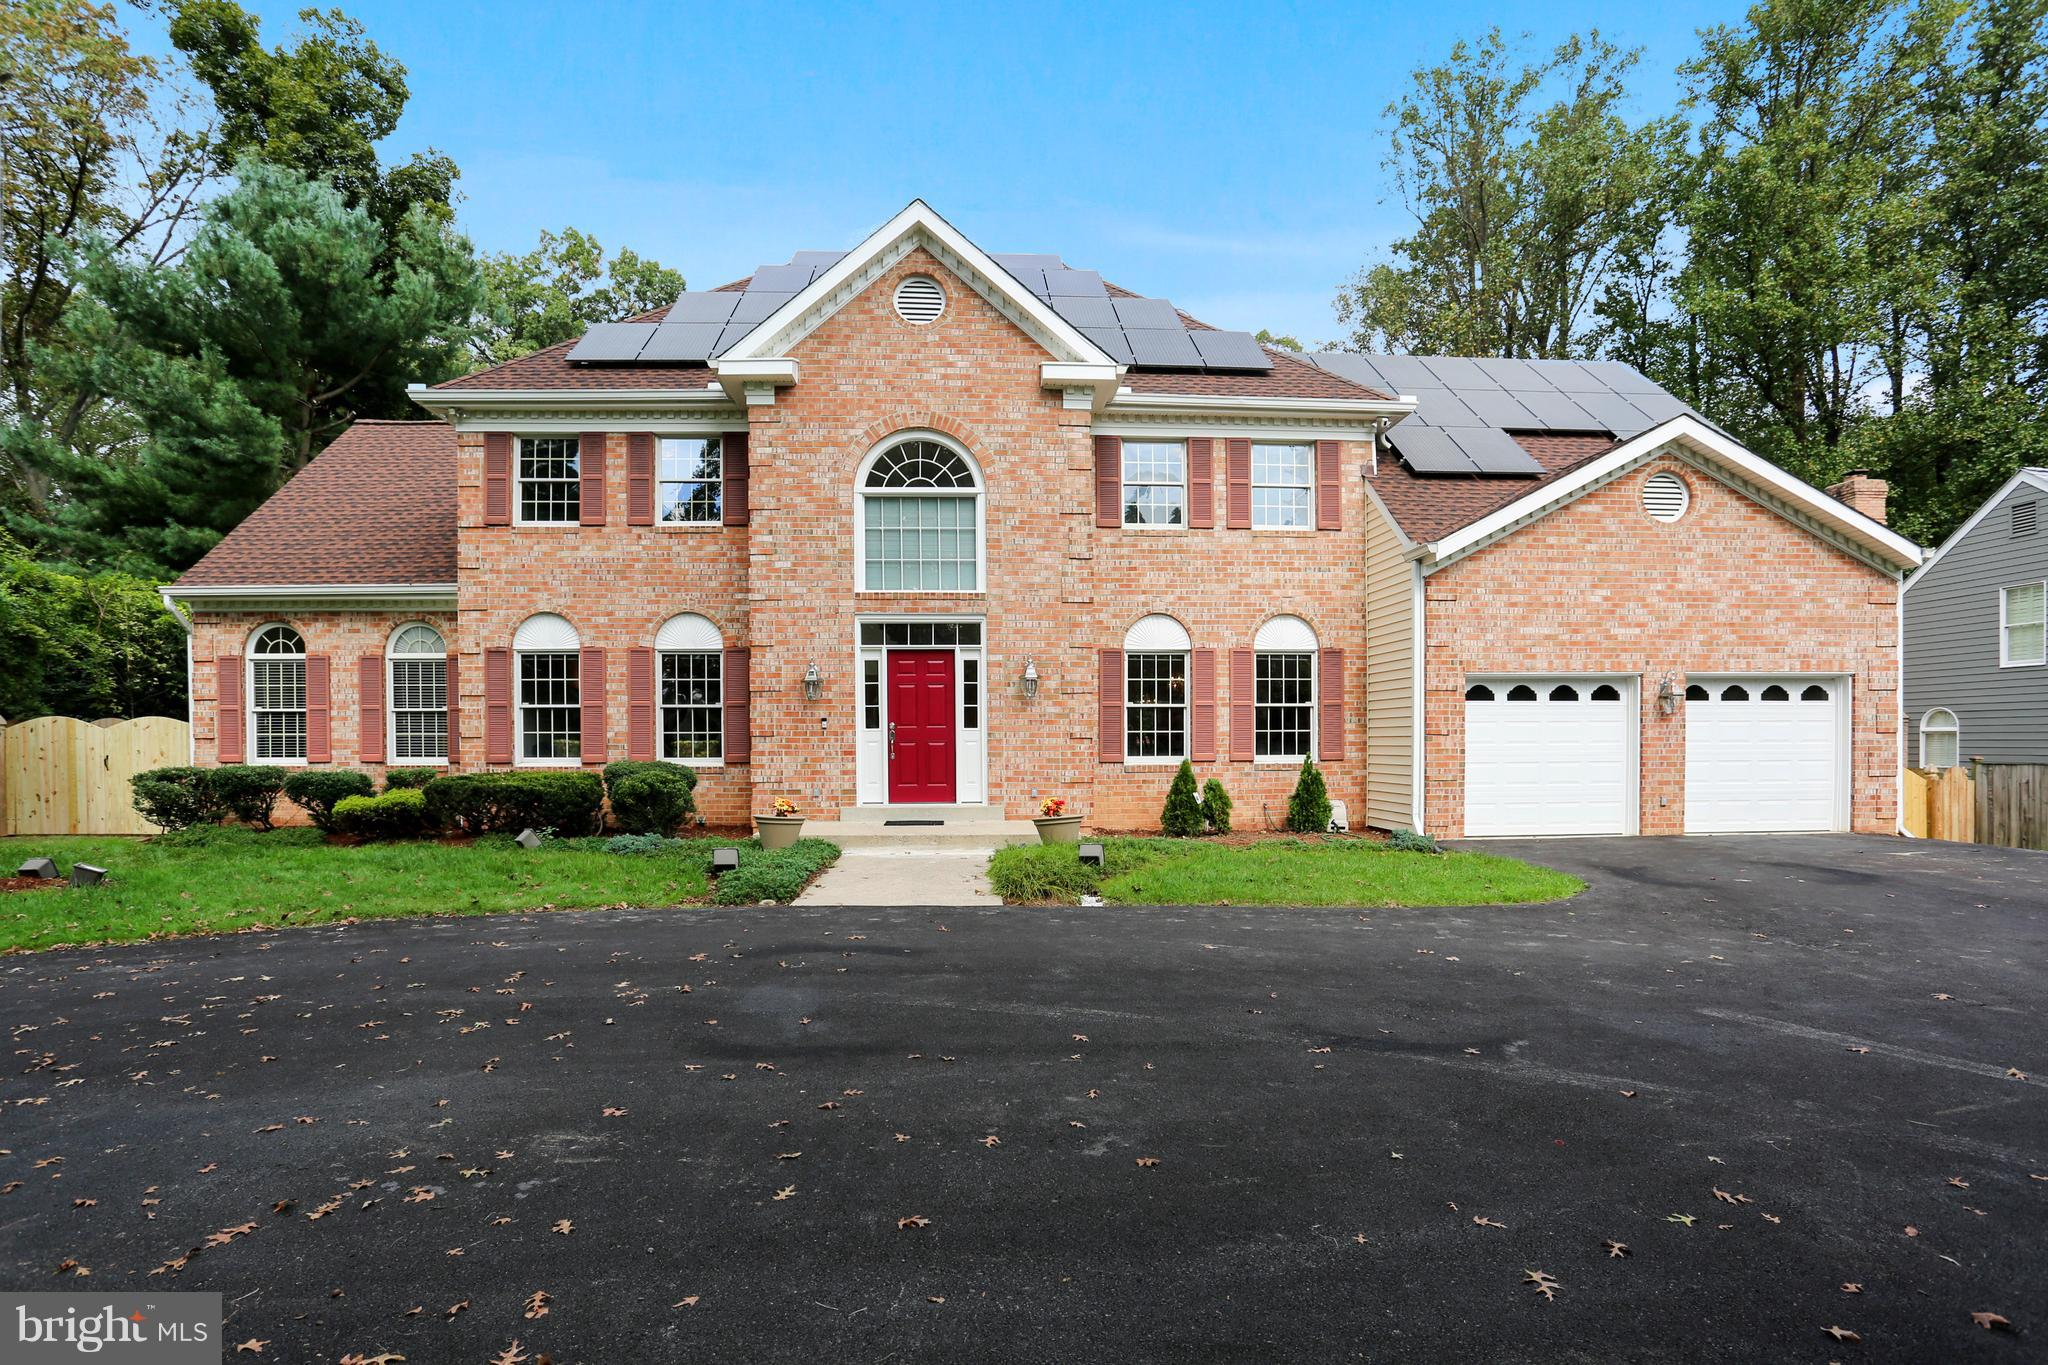 2315 TWIN VALLEY LANE, SILVER SPRING, MD 20906